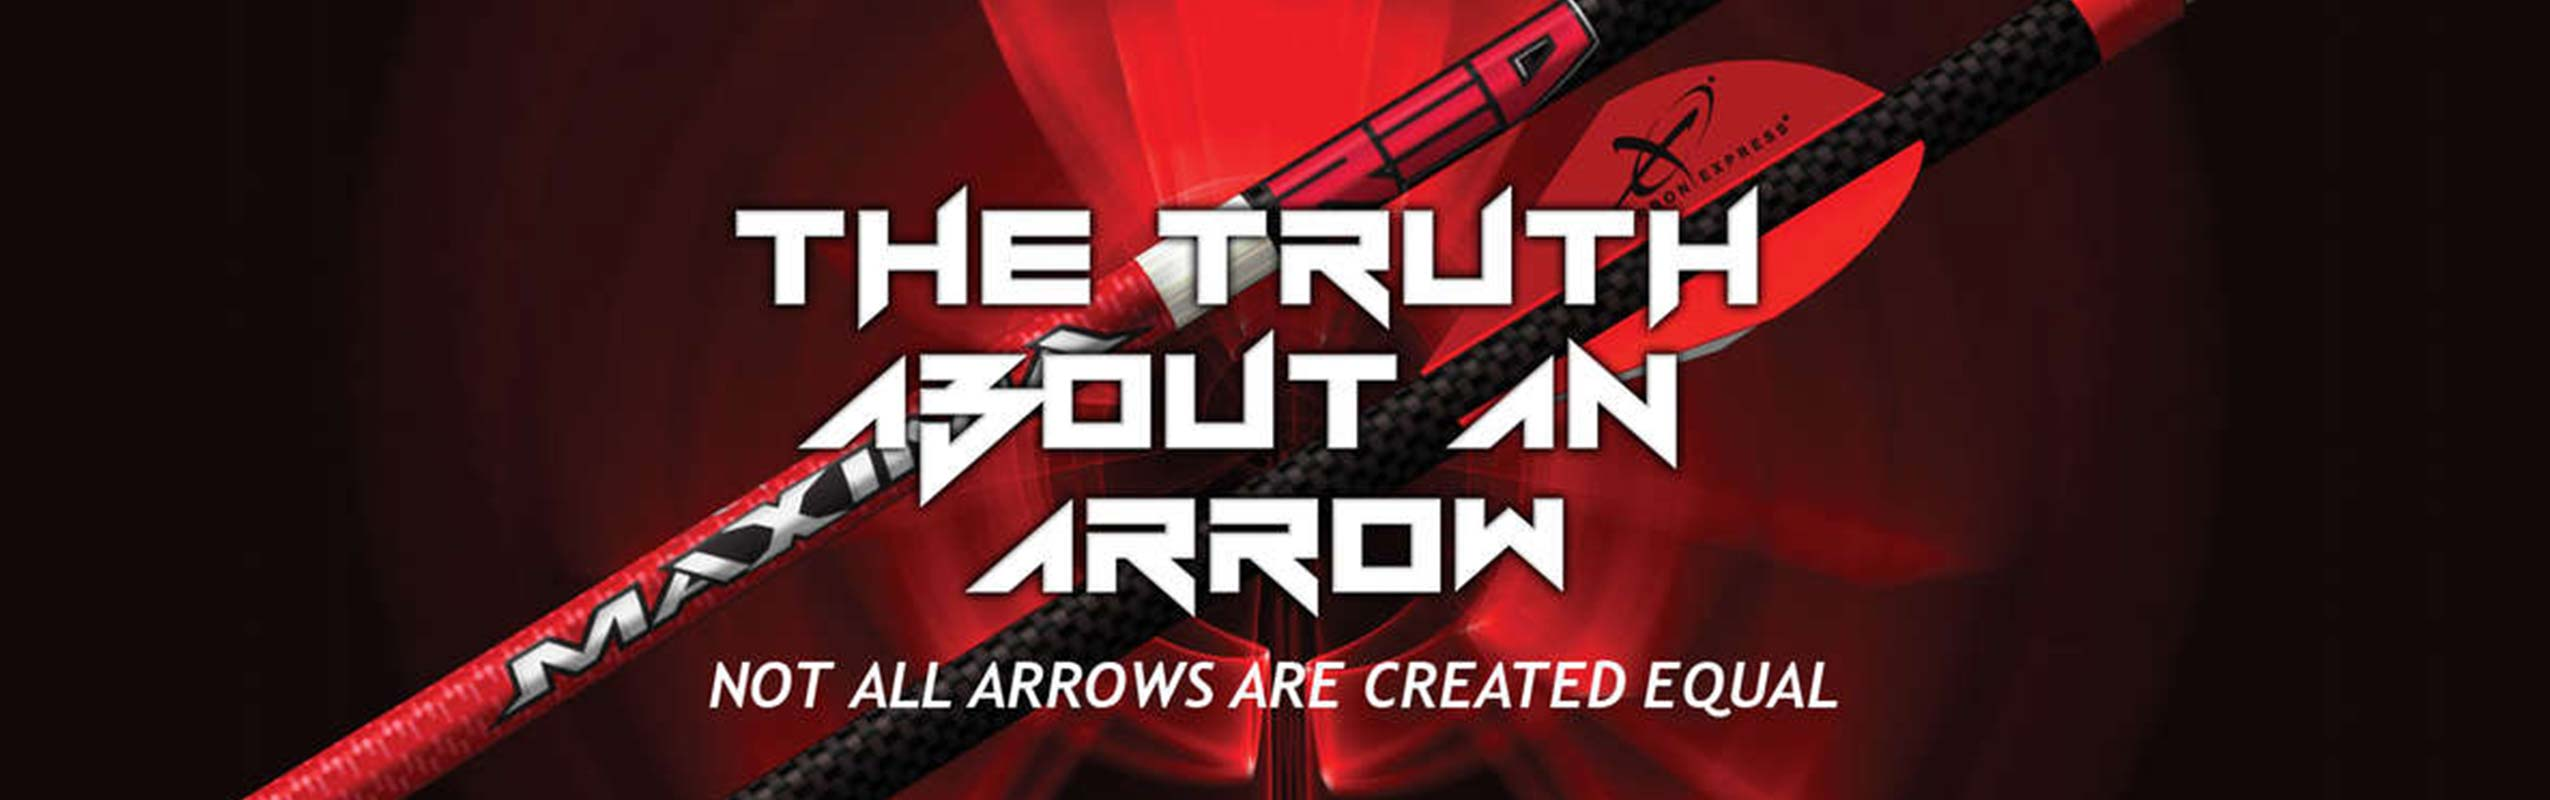 w1200-6731-truth-about-an-arrow-banner.jpg